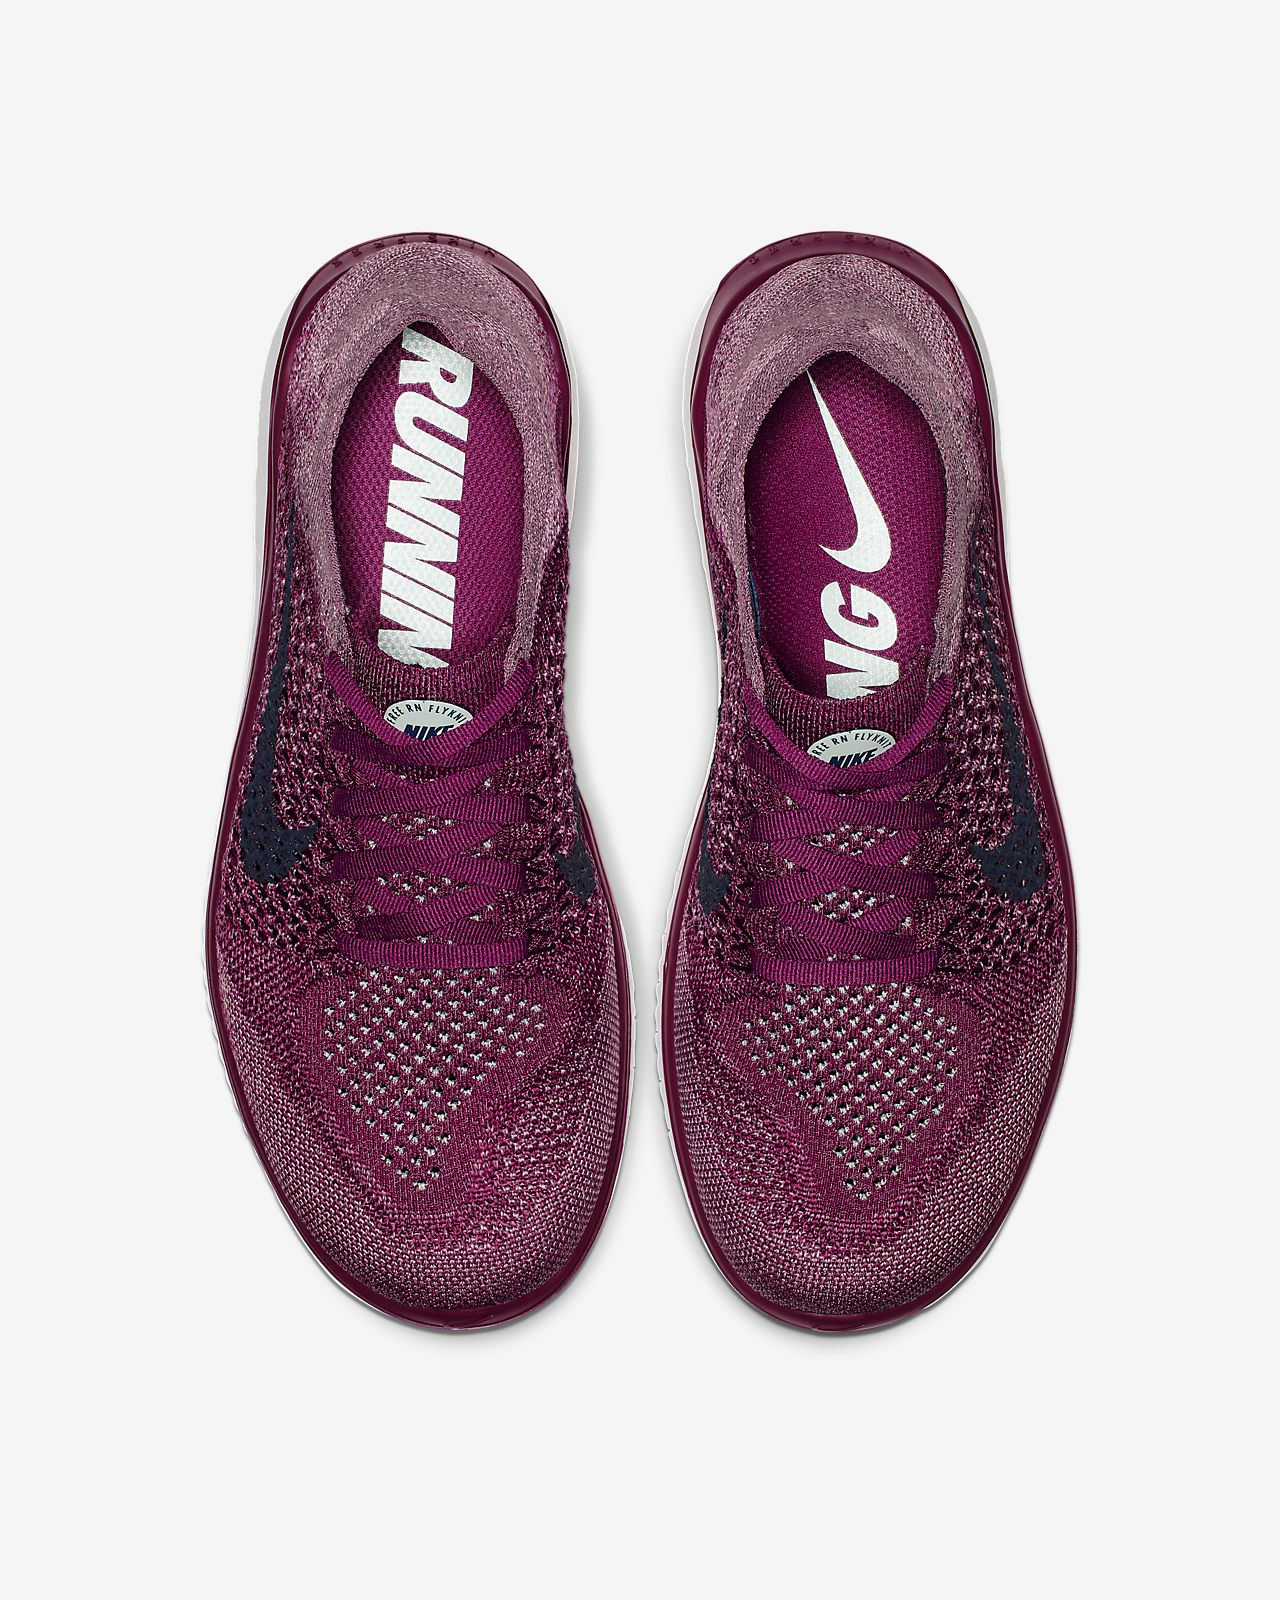 Nike Free Womens Size 6 Running Shoes Lilac Green Laces Sales Of Quality Assurance Women's Shoes Athletic Shoes